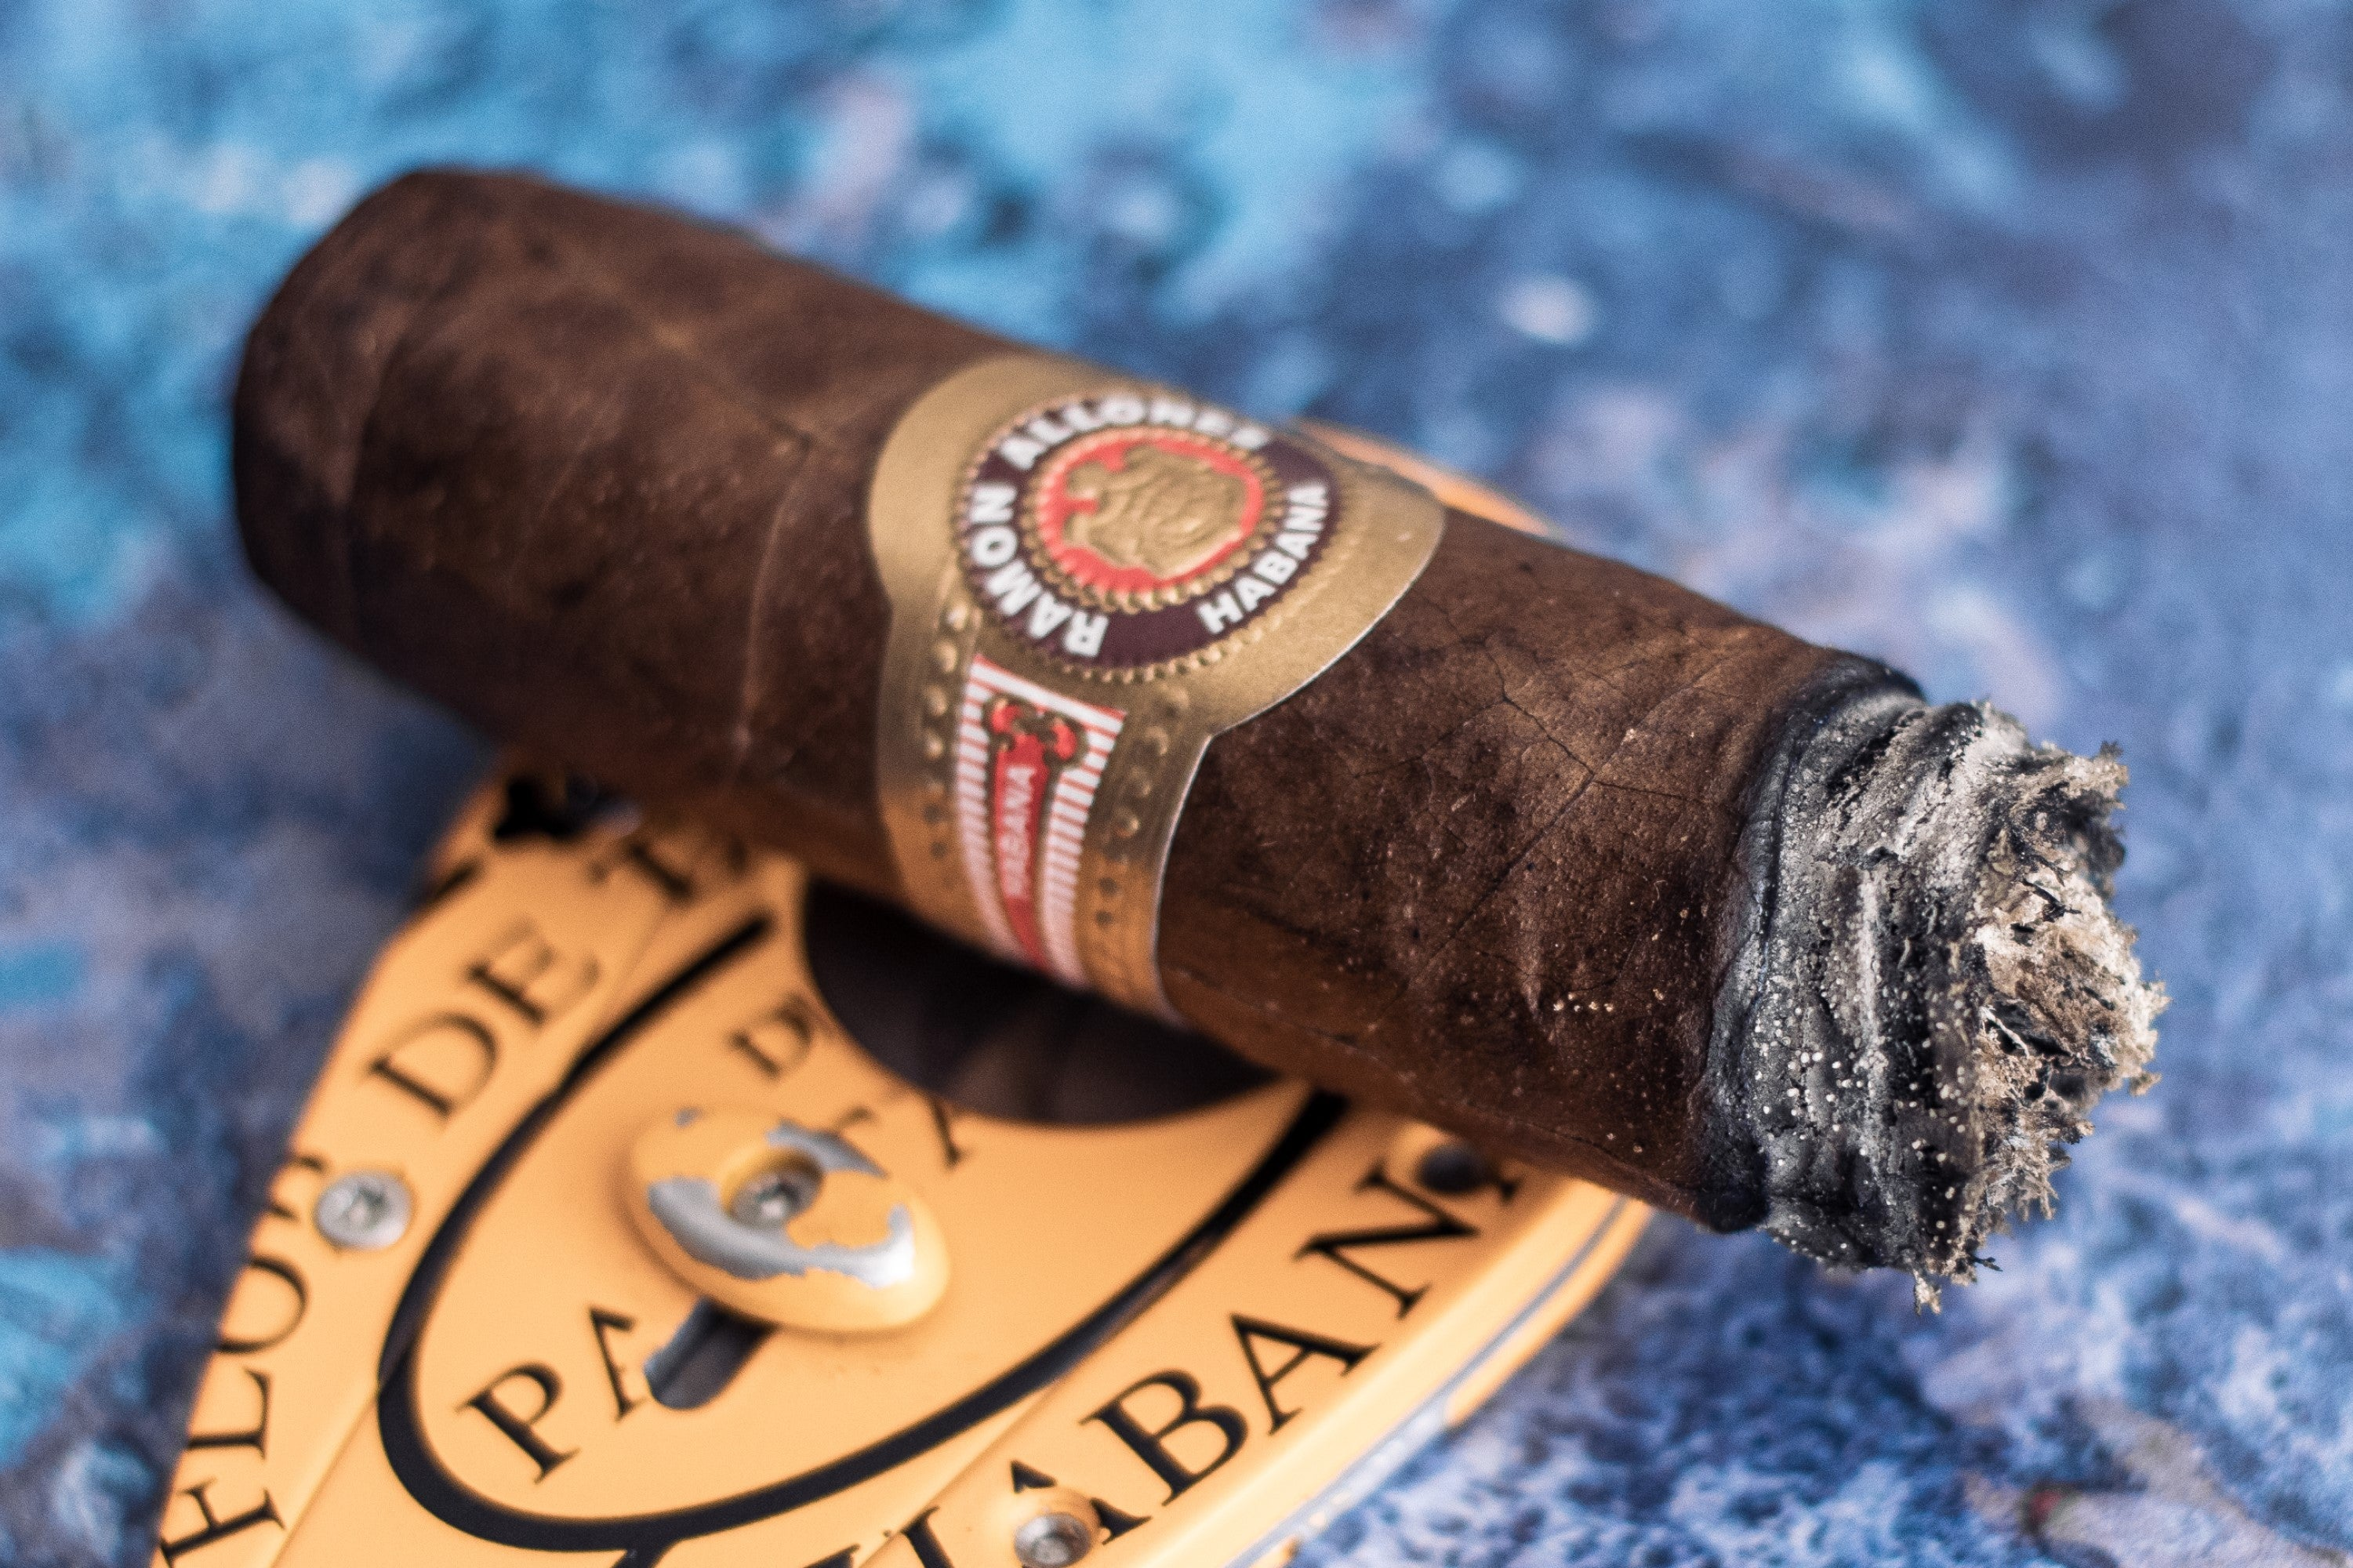 The Ramon Allones Specially Selected Cuban Cigar smoked to the nub.